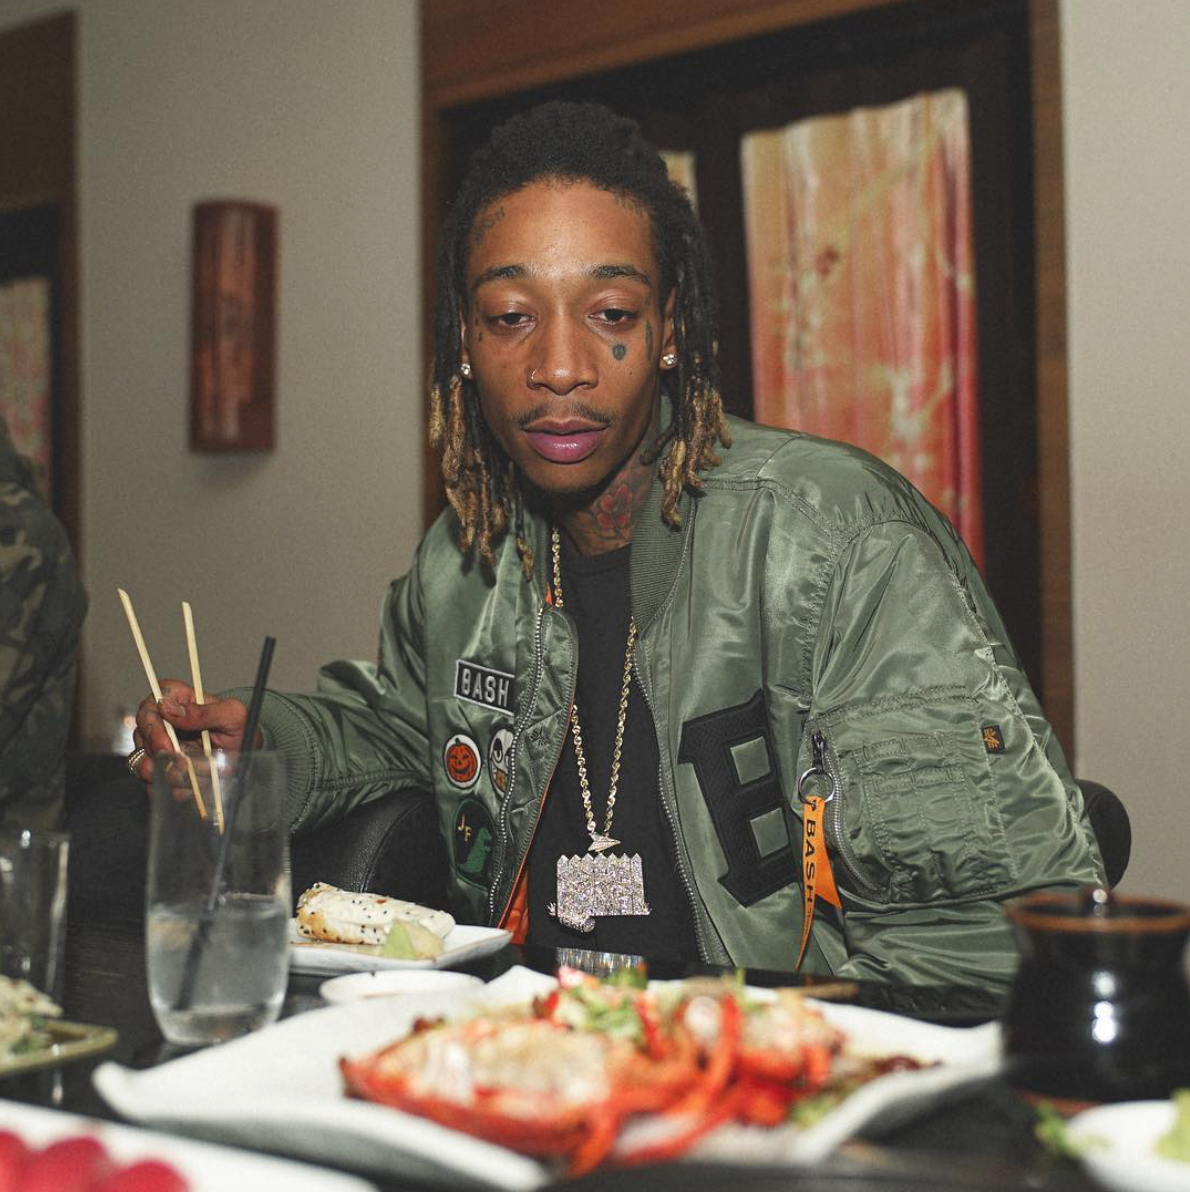 Pictures of wiz khalifa pictures of celebrities - Wiz Khalifa Rocks A Bomber From His Alpha X Junk Food Collab Bash On His Instagram